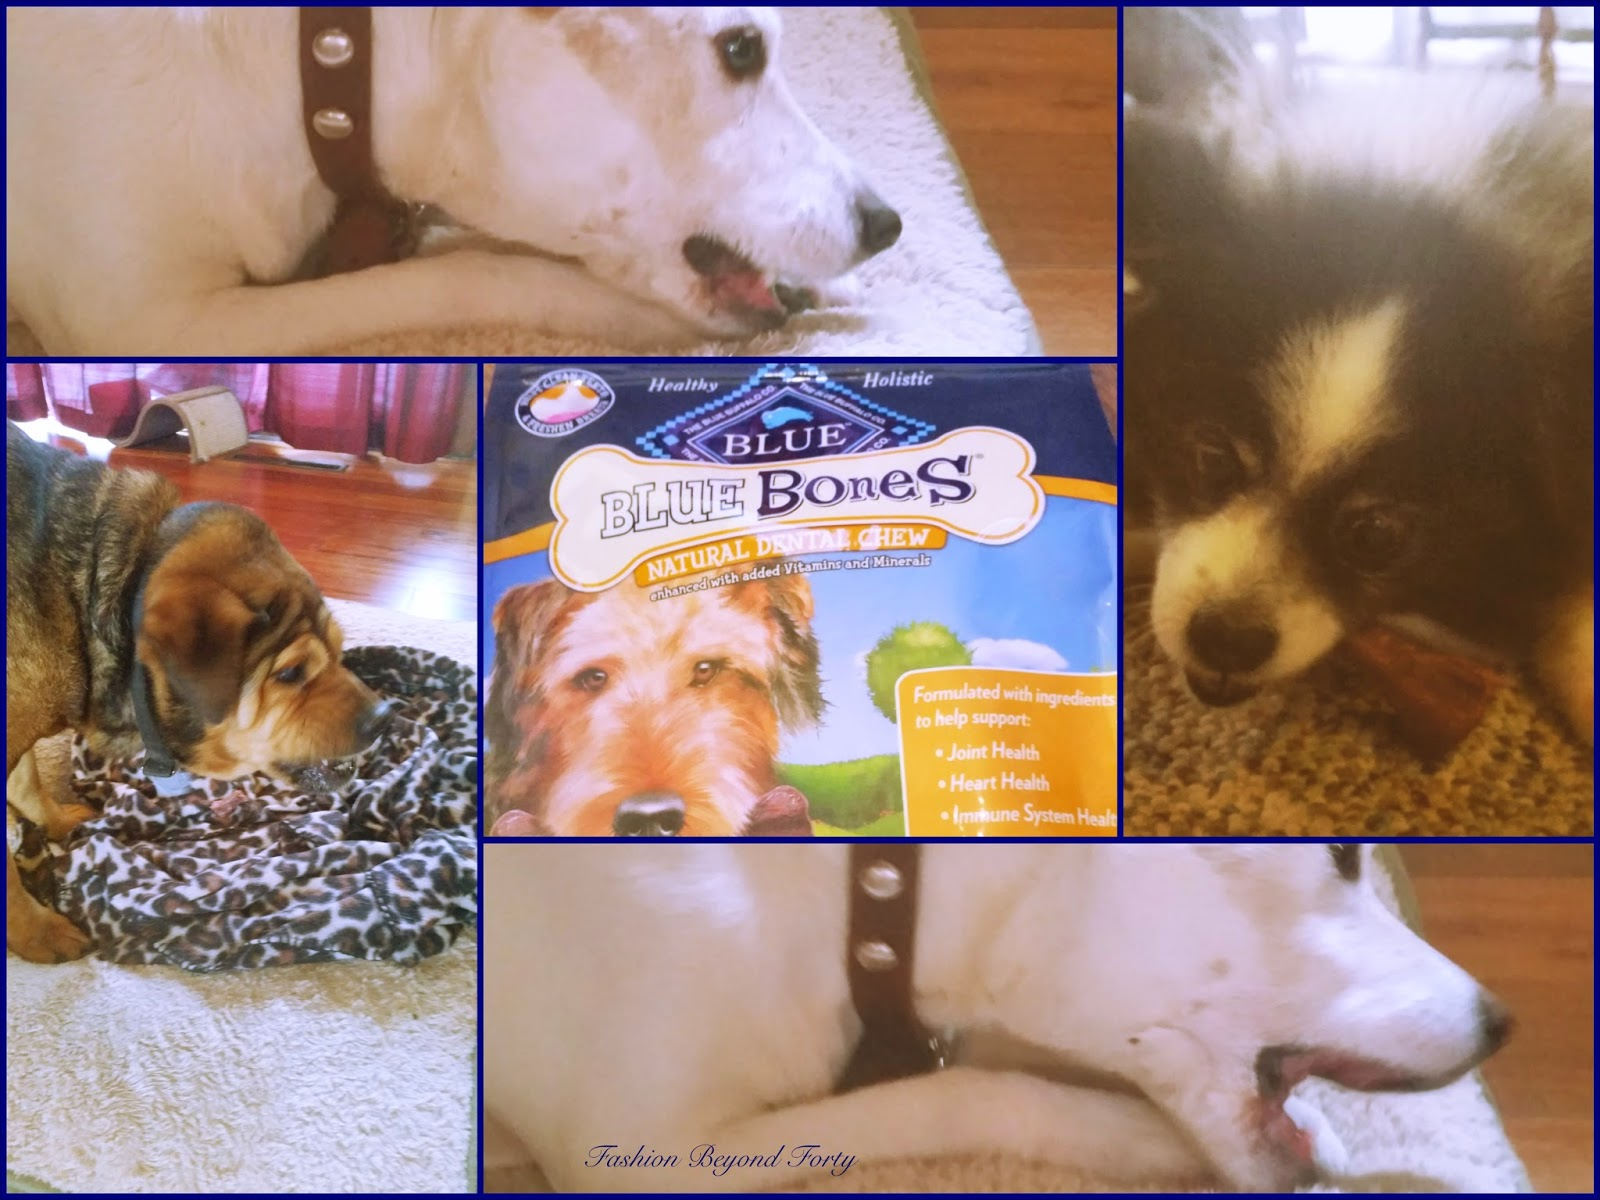 Pets and Dental Health Care with Chewy and Blue Buffalo